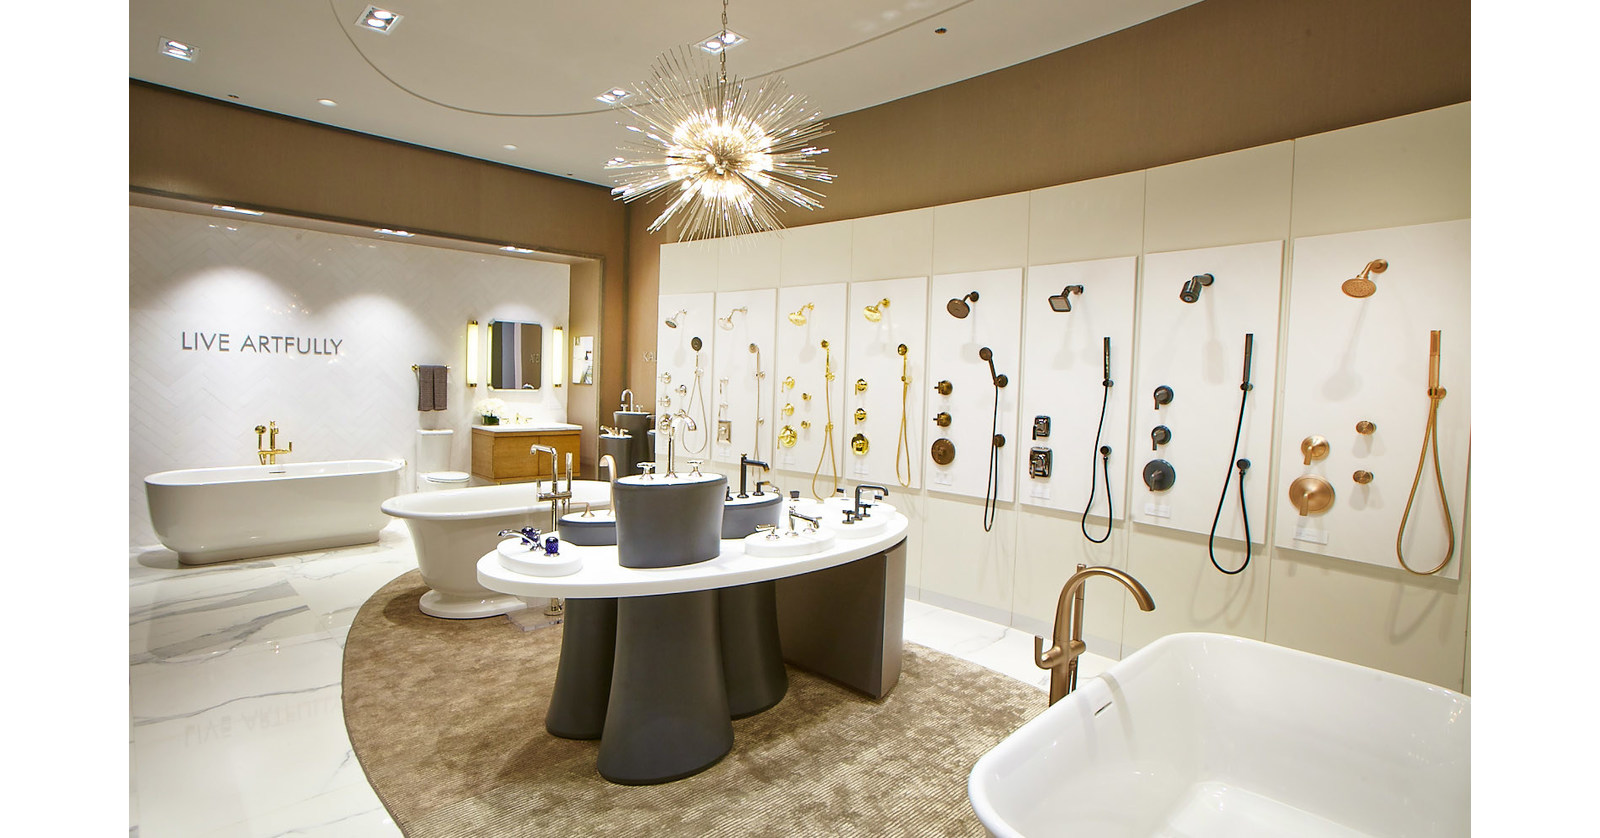 Kohler Co. Reinvents Its Approach To Global Retail With Launch Of ...